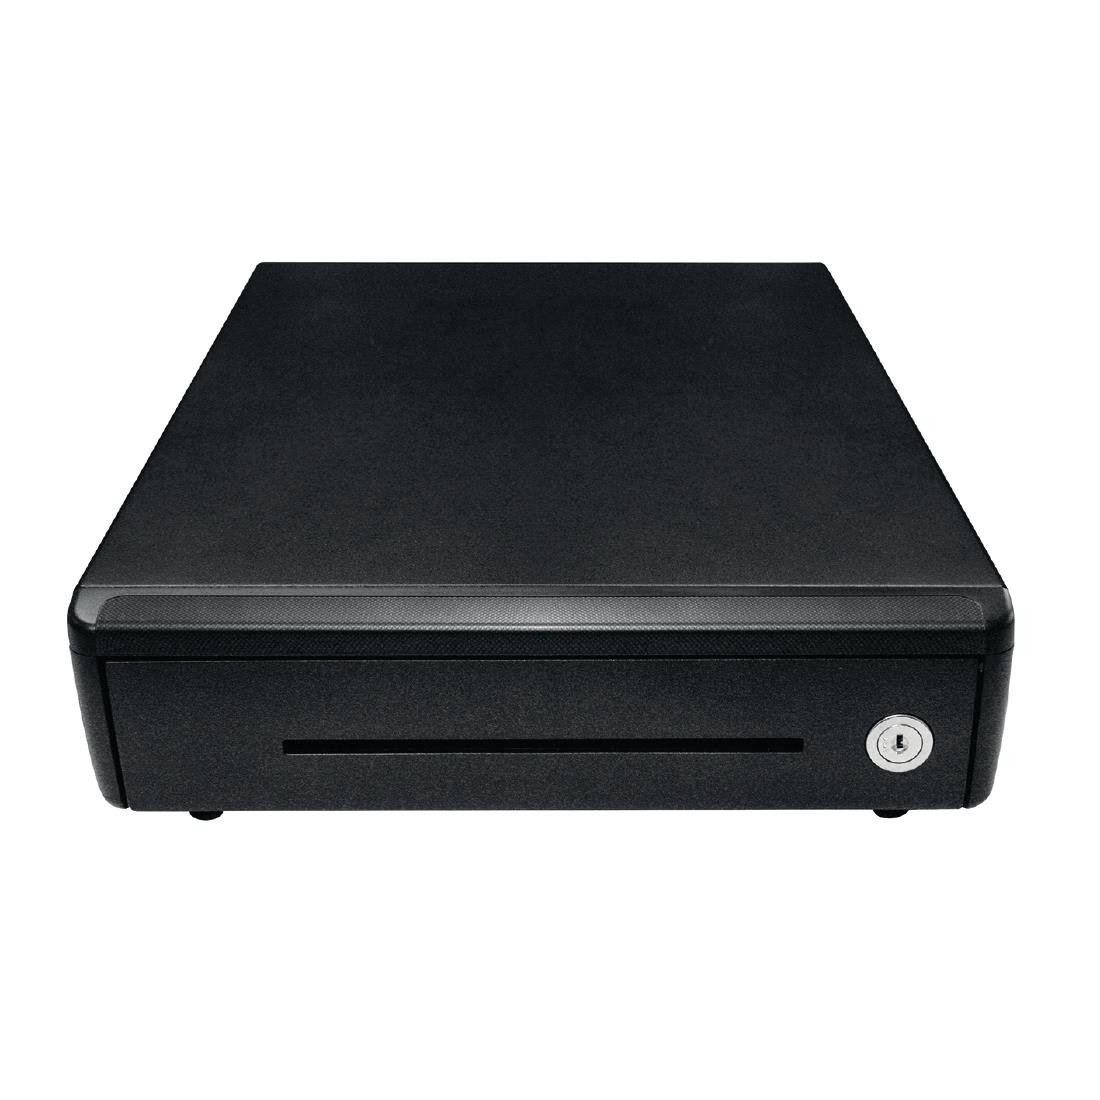 SAM4S Cash Drawer Base for ER-230 BEJ